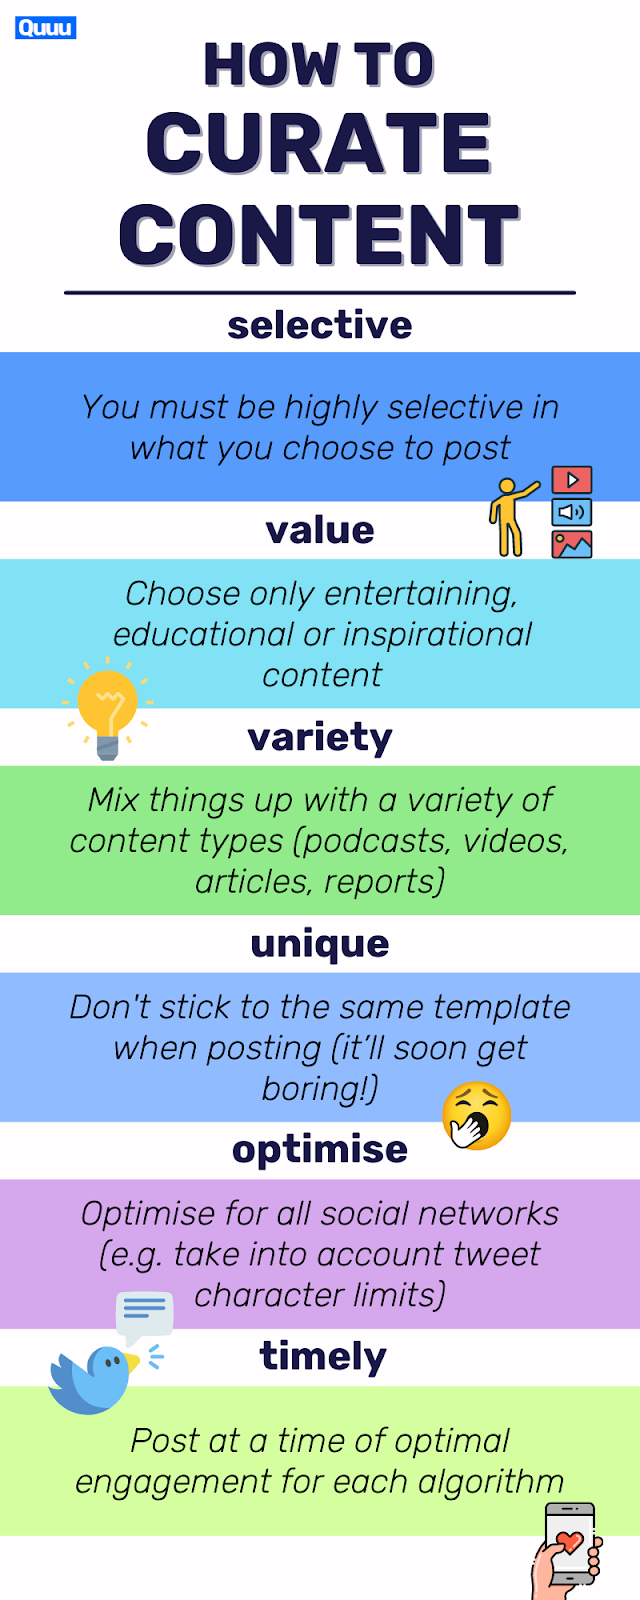 How to curate content effectively in your content strategy:Be selectiveChoose valuable contentMix it upBe uniqueOptimize for all social networksMake it timely